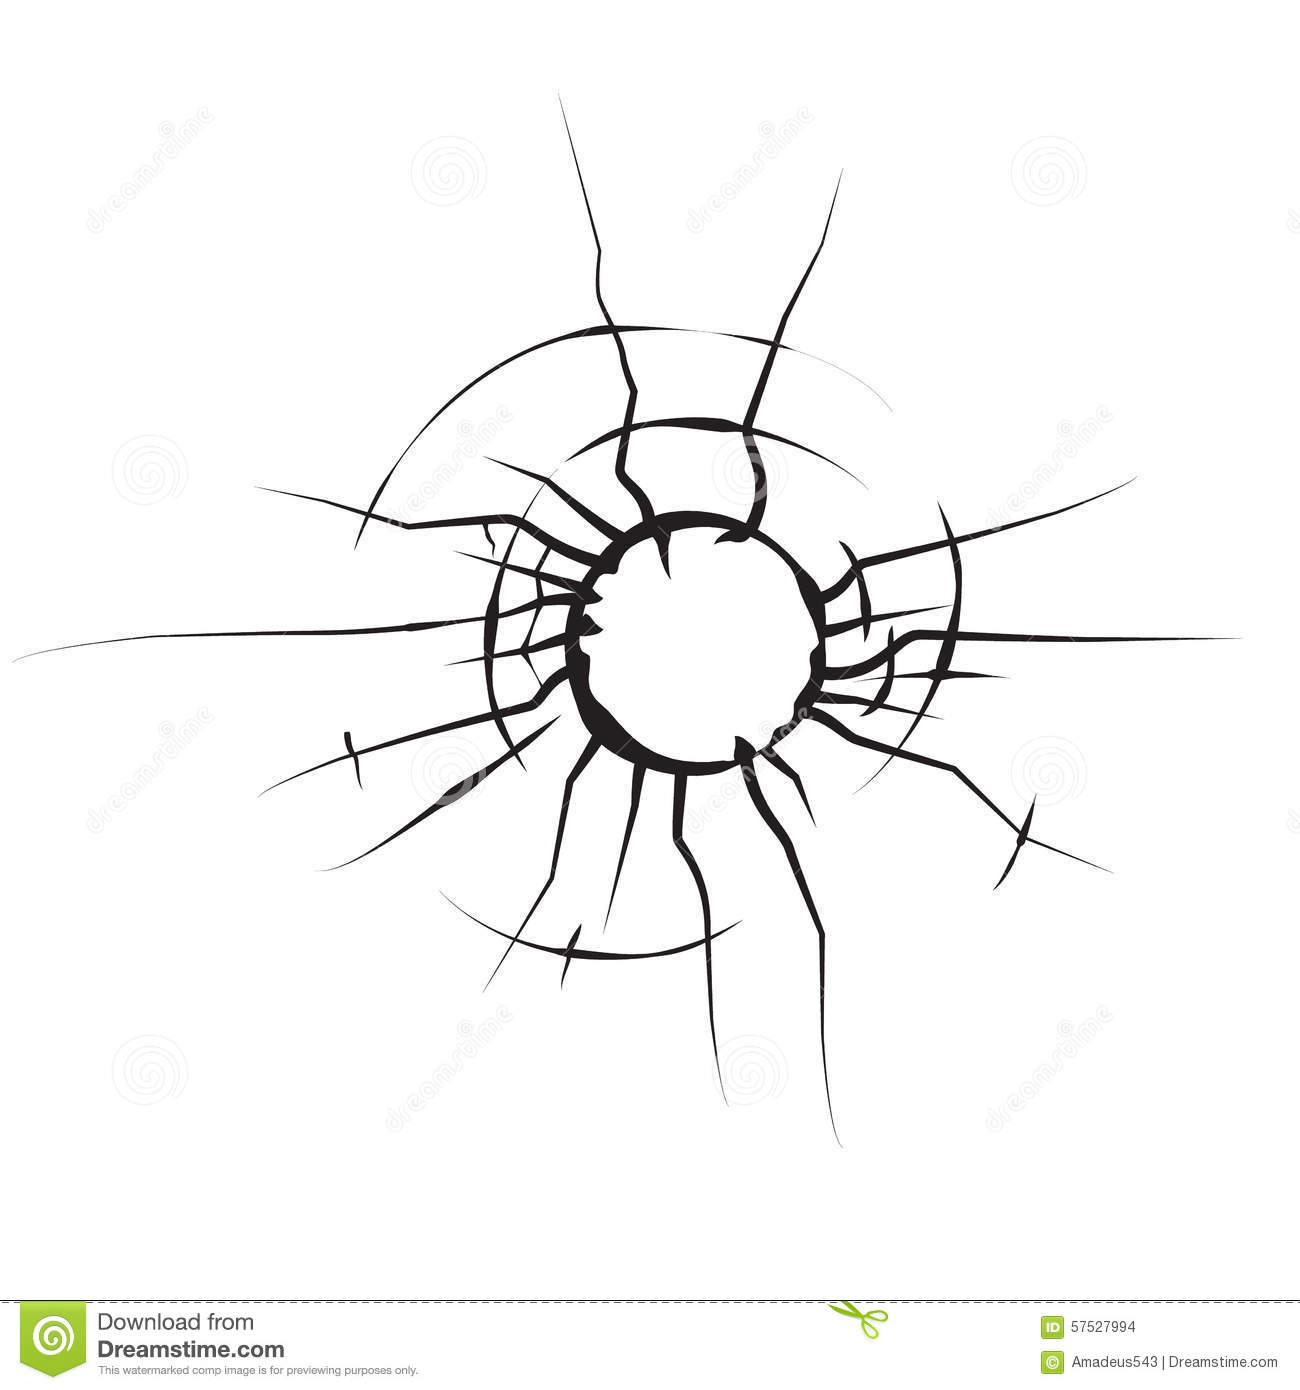 Background Of Cracked Glass Black And White Royalty Free